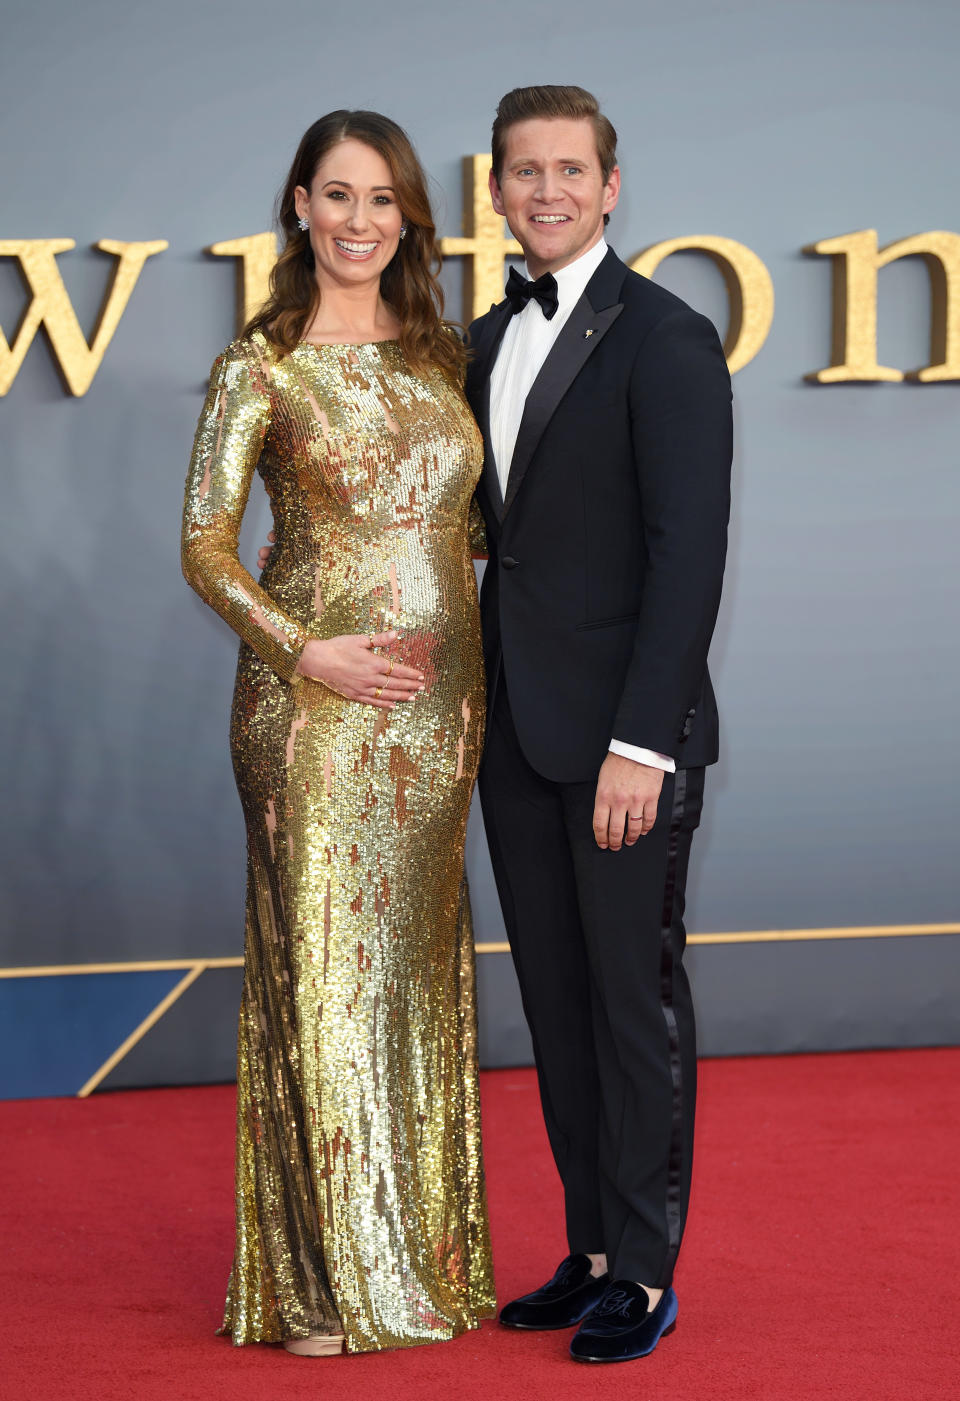 """Jessica Blair Herman and husband Allen Leech, who plays Tom Branson in the hit series, attend the """"Downton Abbey"""" World Premiere at Cineworld Leicester Square [Photo: Getty]"""